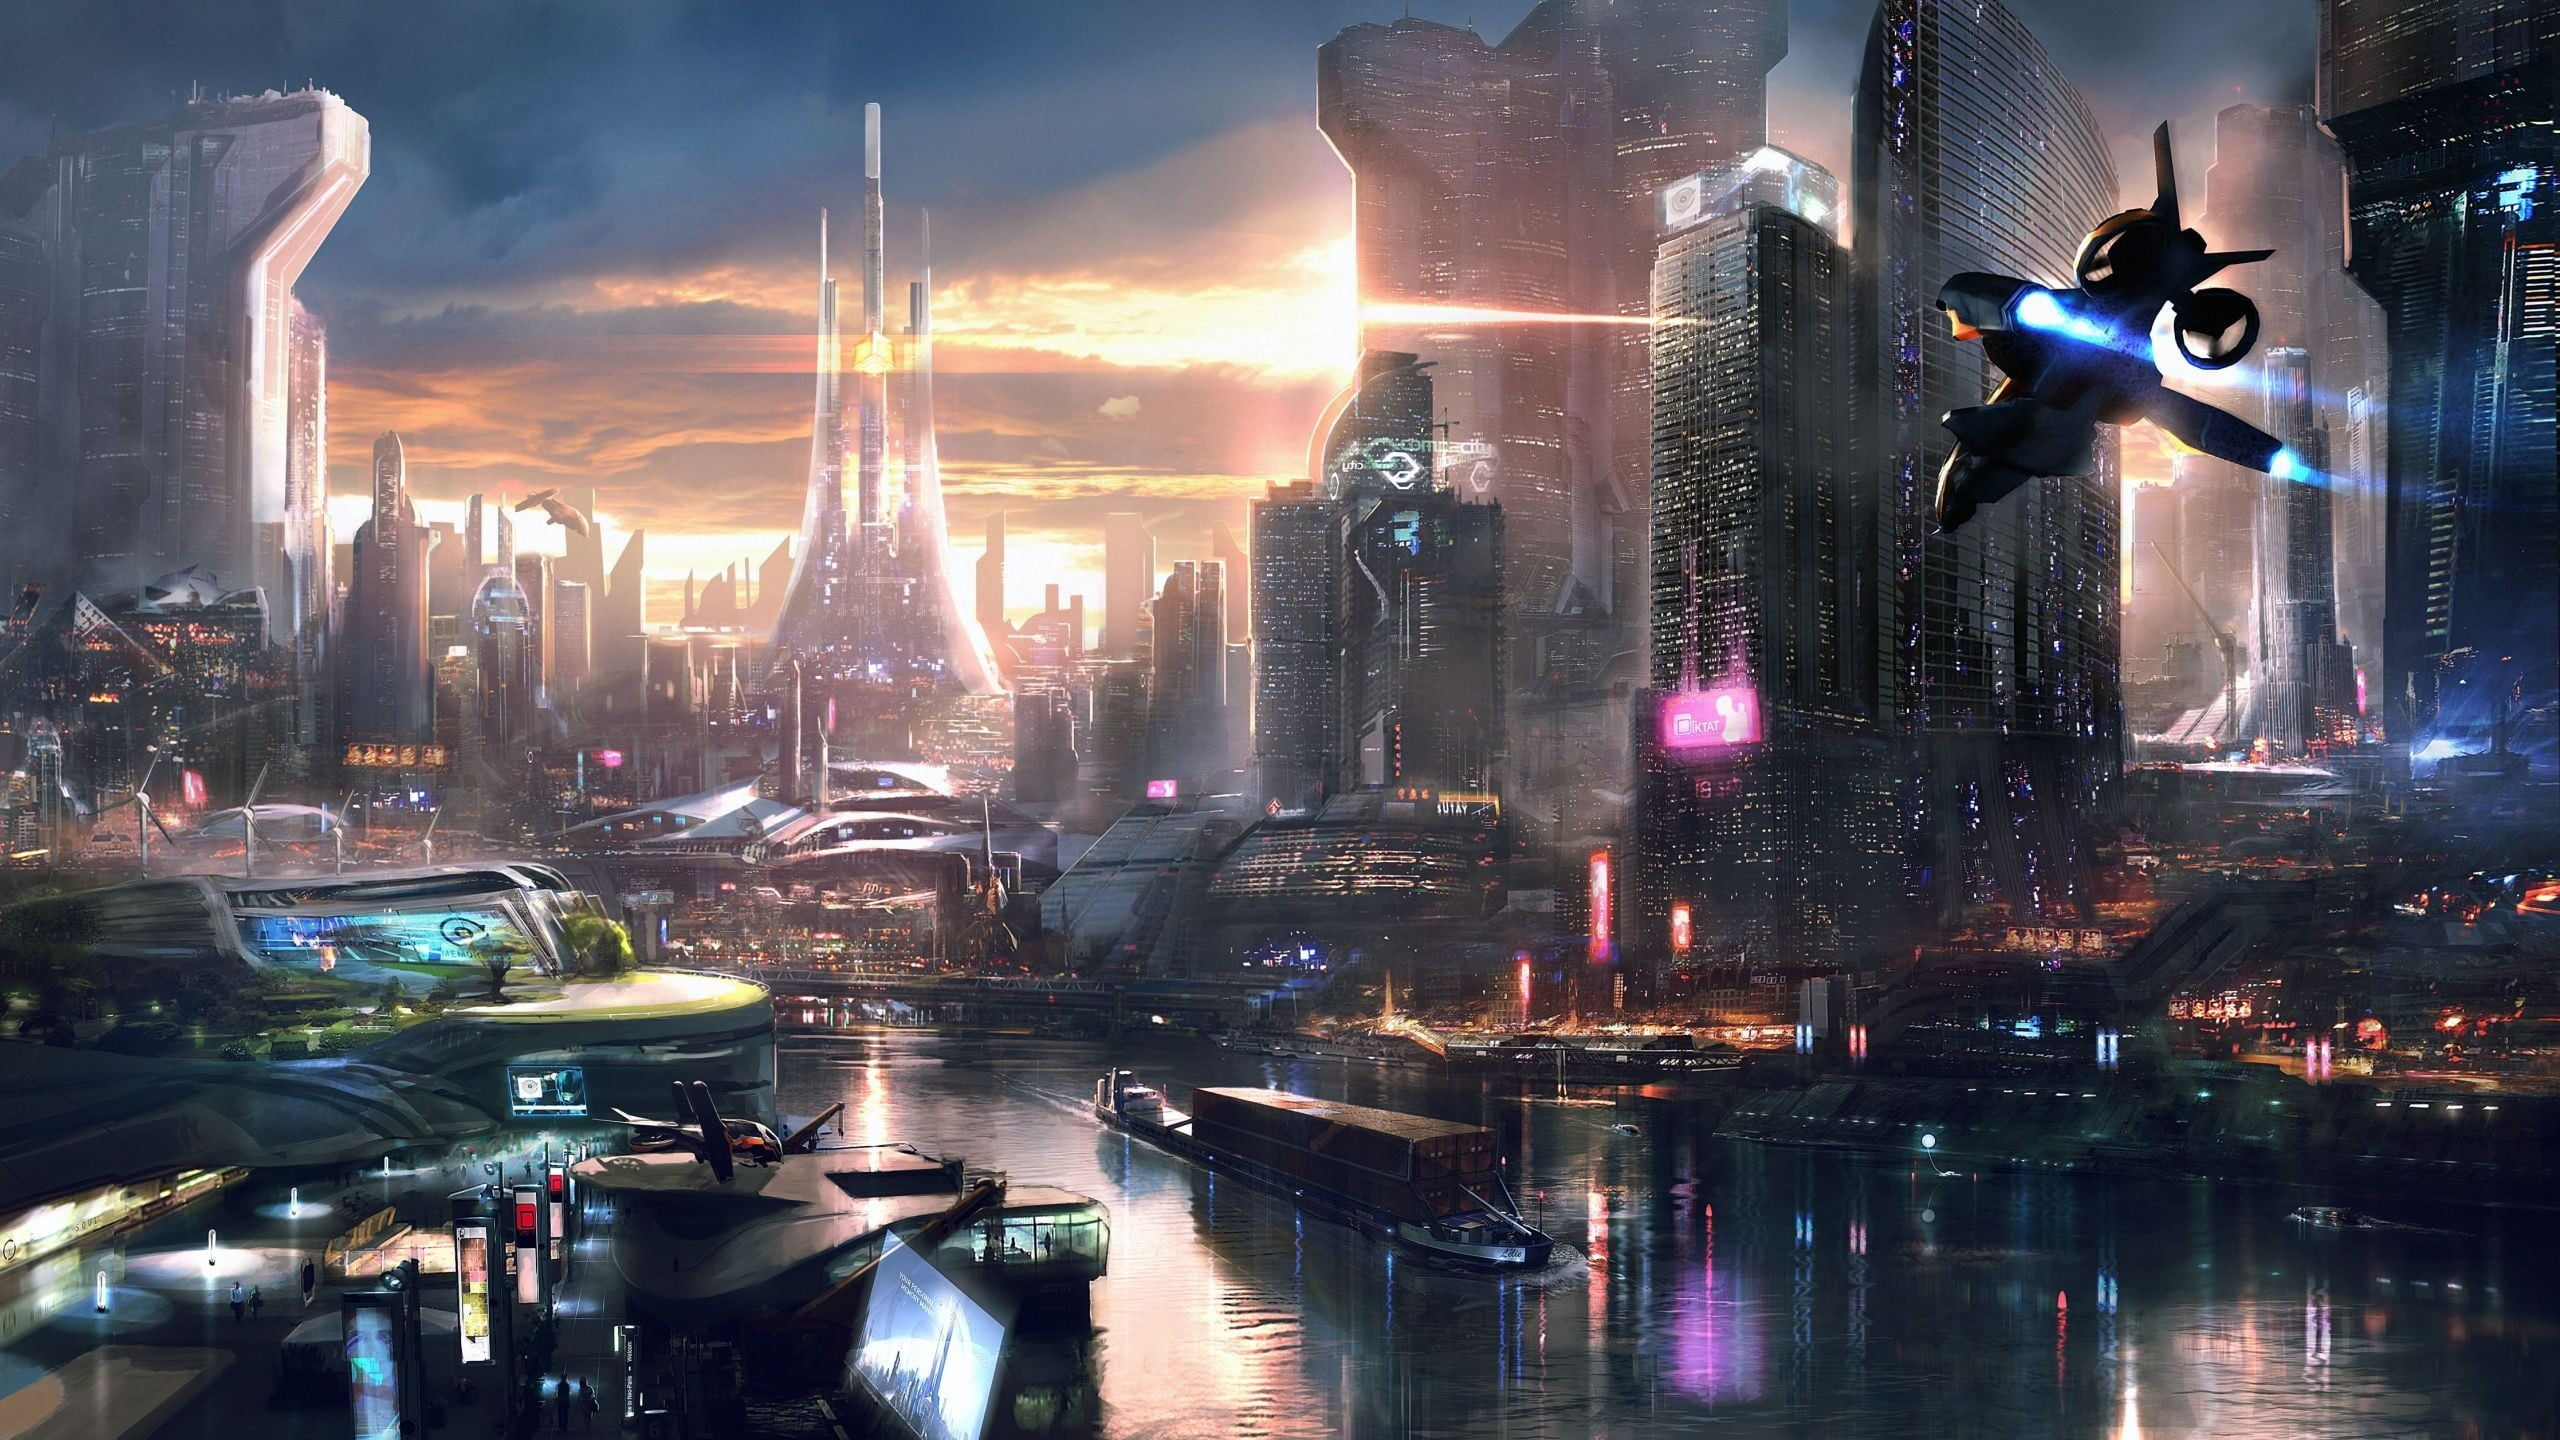 Black And Blue Plane Flying Near City Buildings By The Body Of Water Digital Wallpaper 3d Building Wallpaper Rememb In 2020 Futuristic City Sci Fi City Cyberpunk City